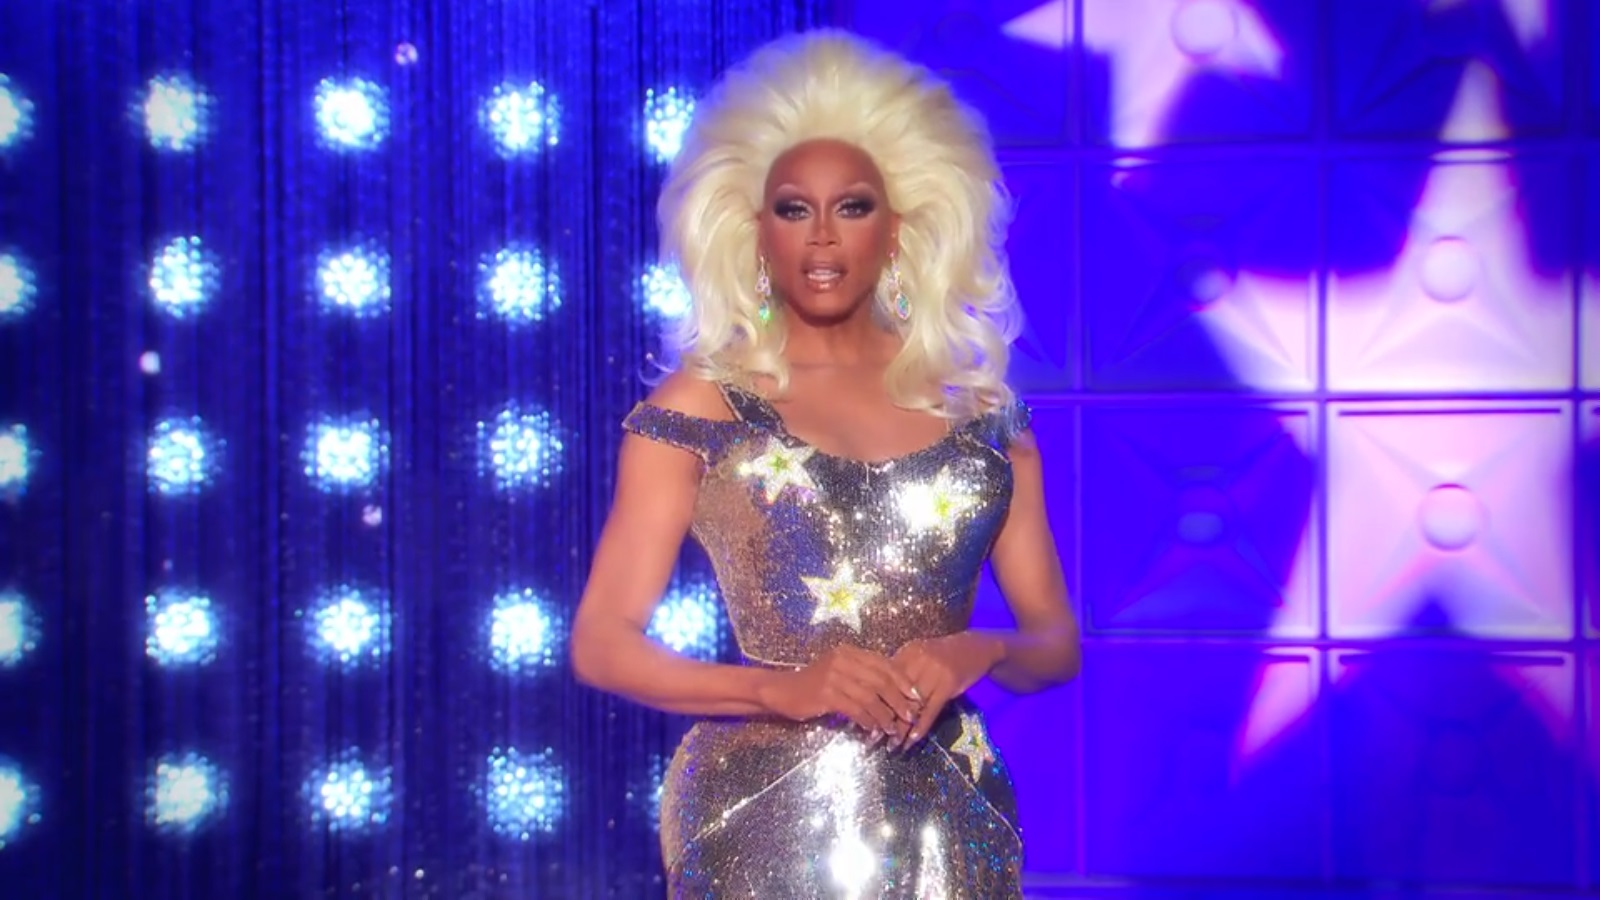 TV rating breakdowns for the homes of same-sex couples have been released for the first time, revealing how much they love RuPaul's Drag Race.